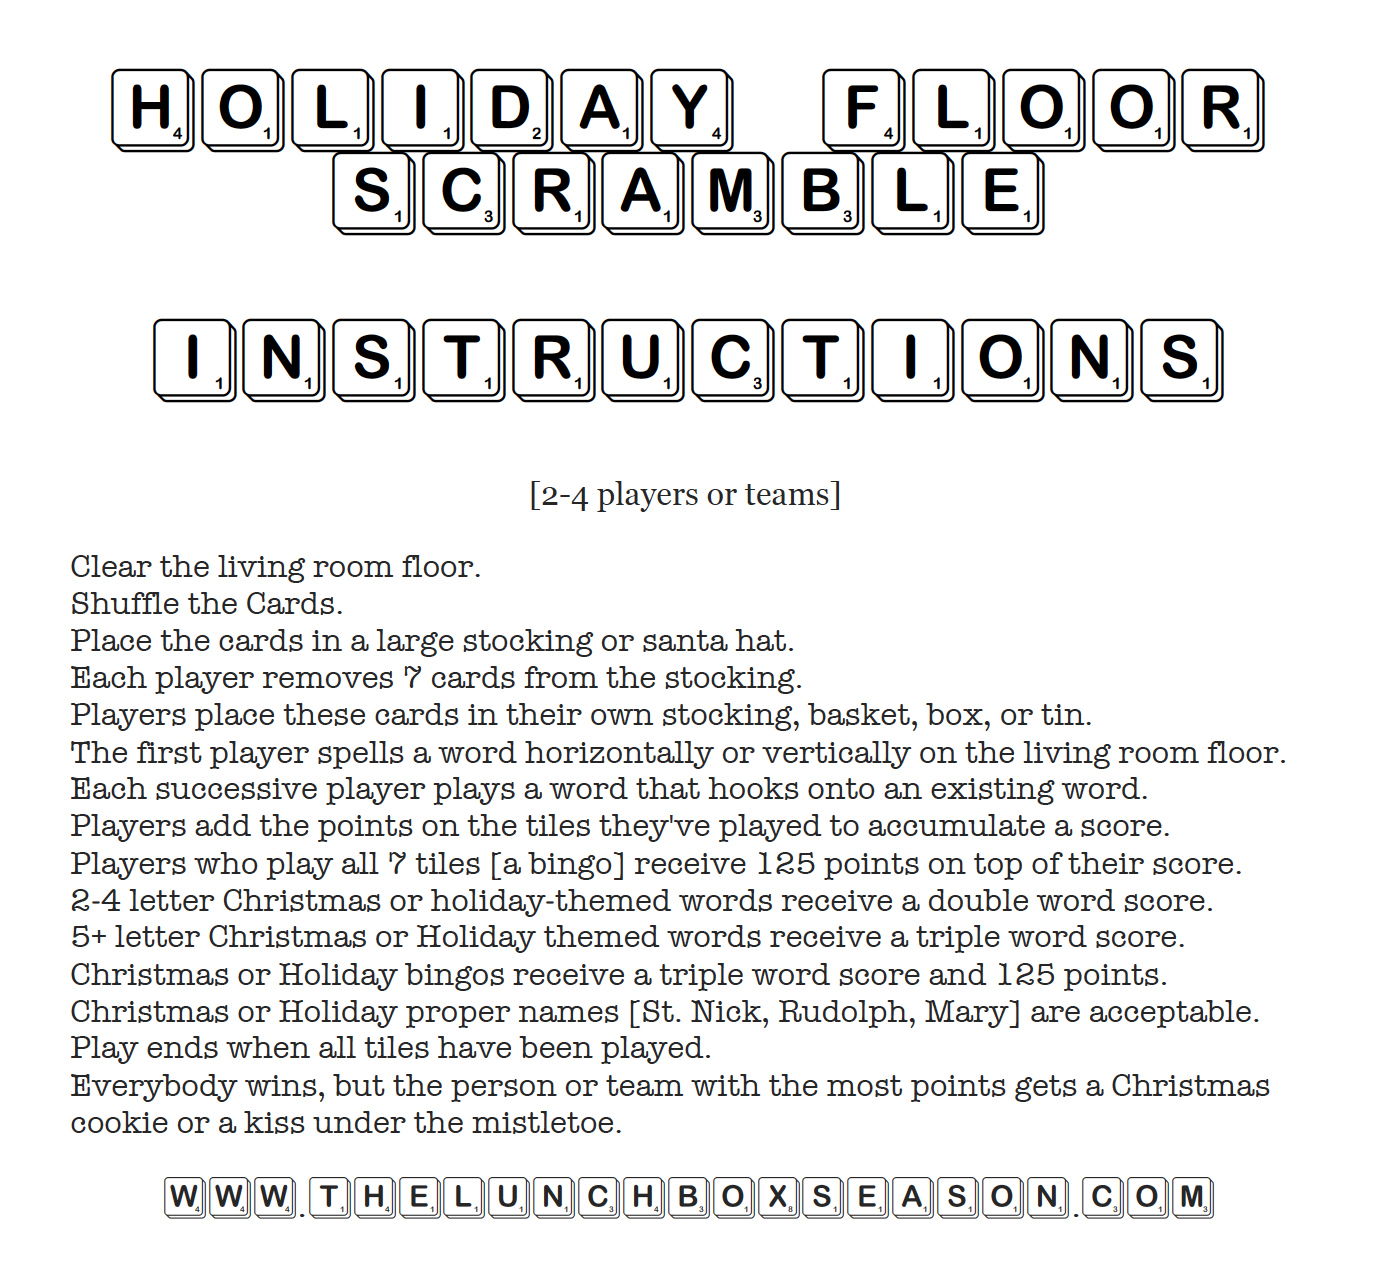 Printable Holiday Floor Scramble Instructions from the Lunchbox Season